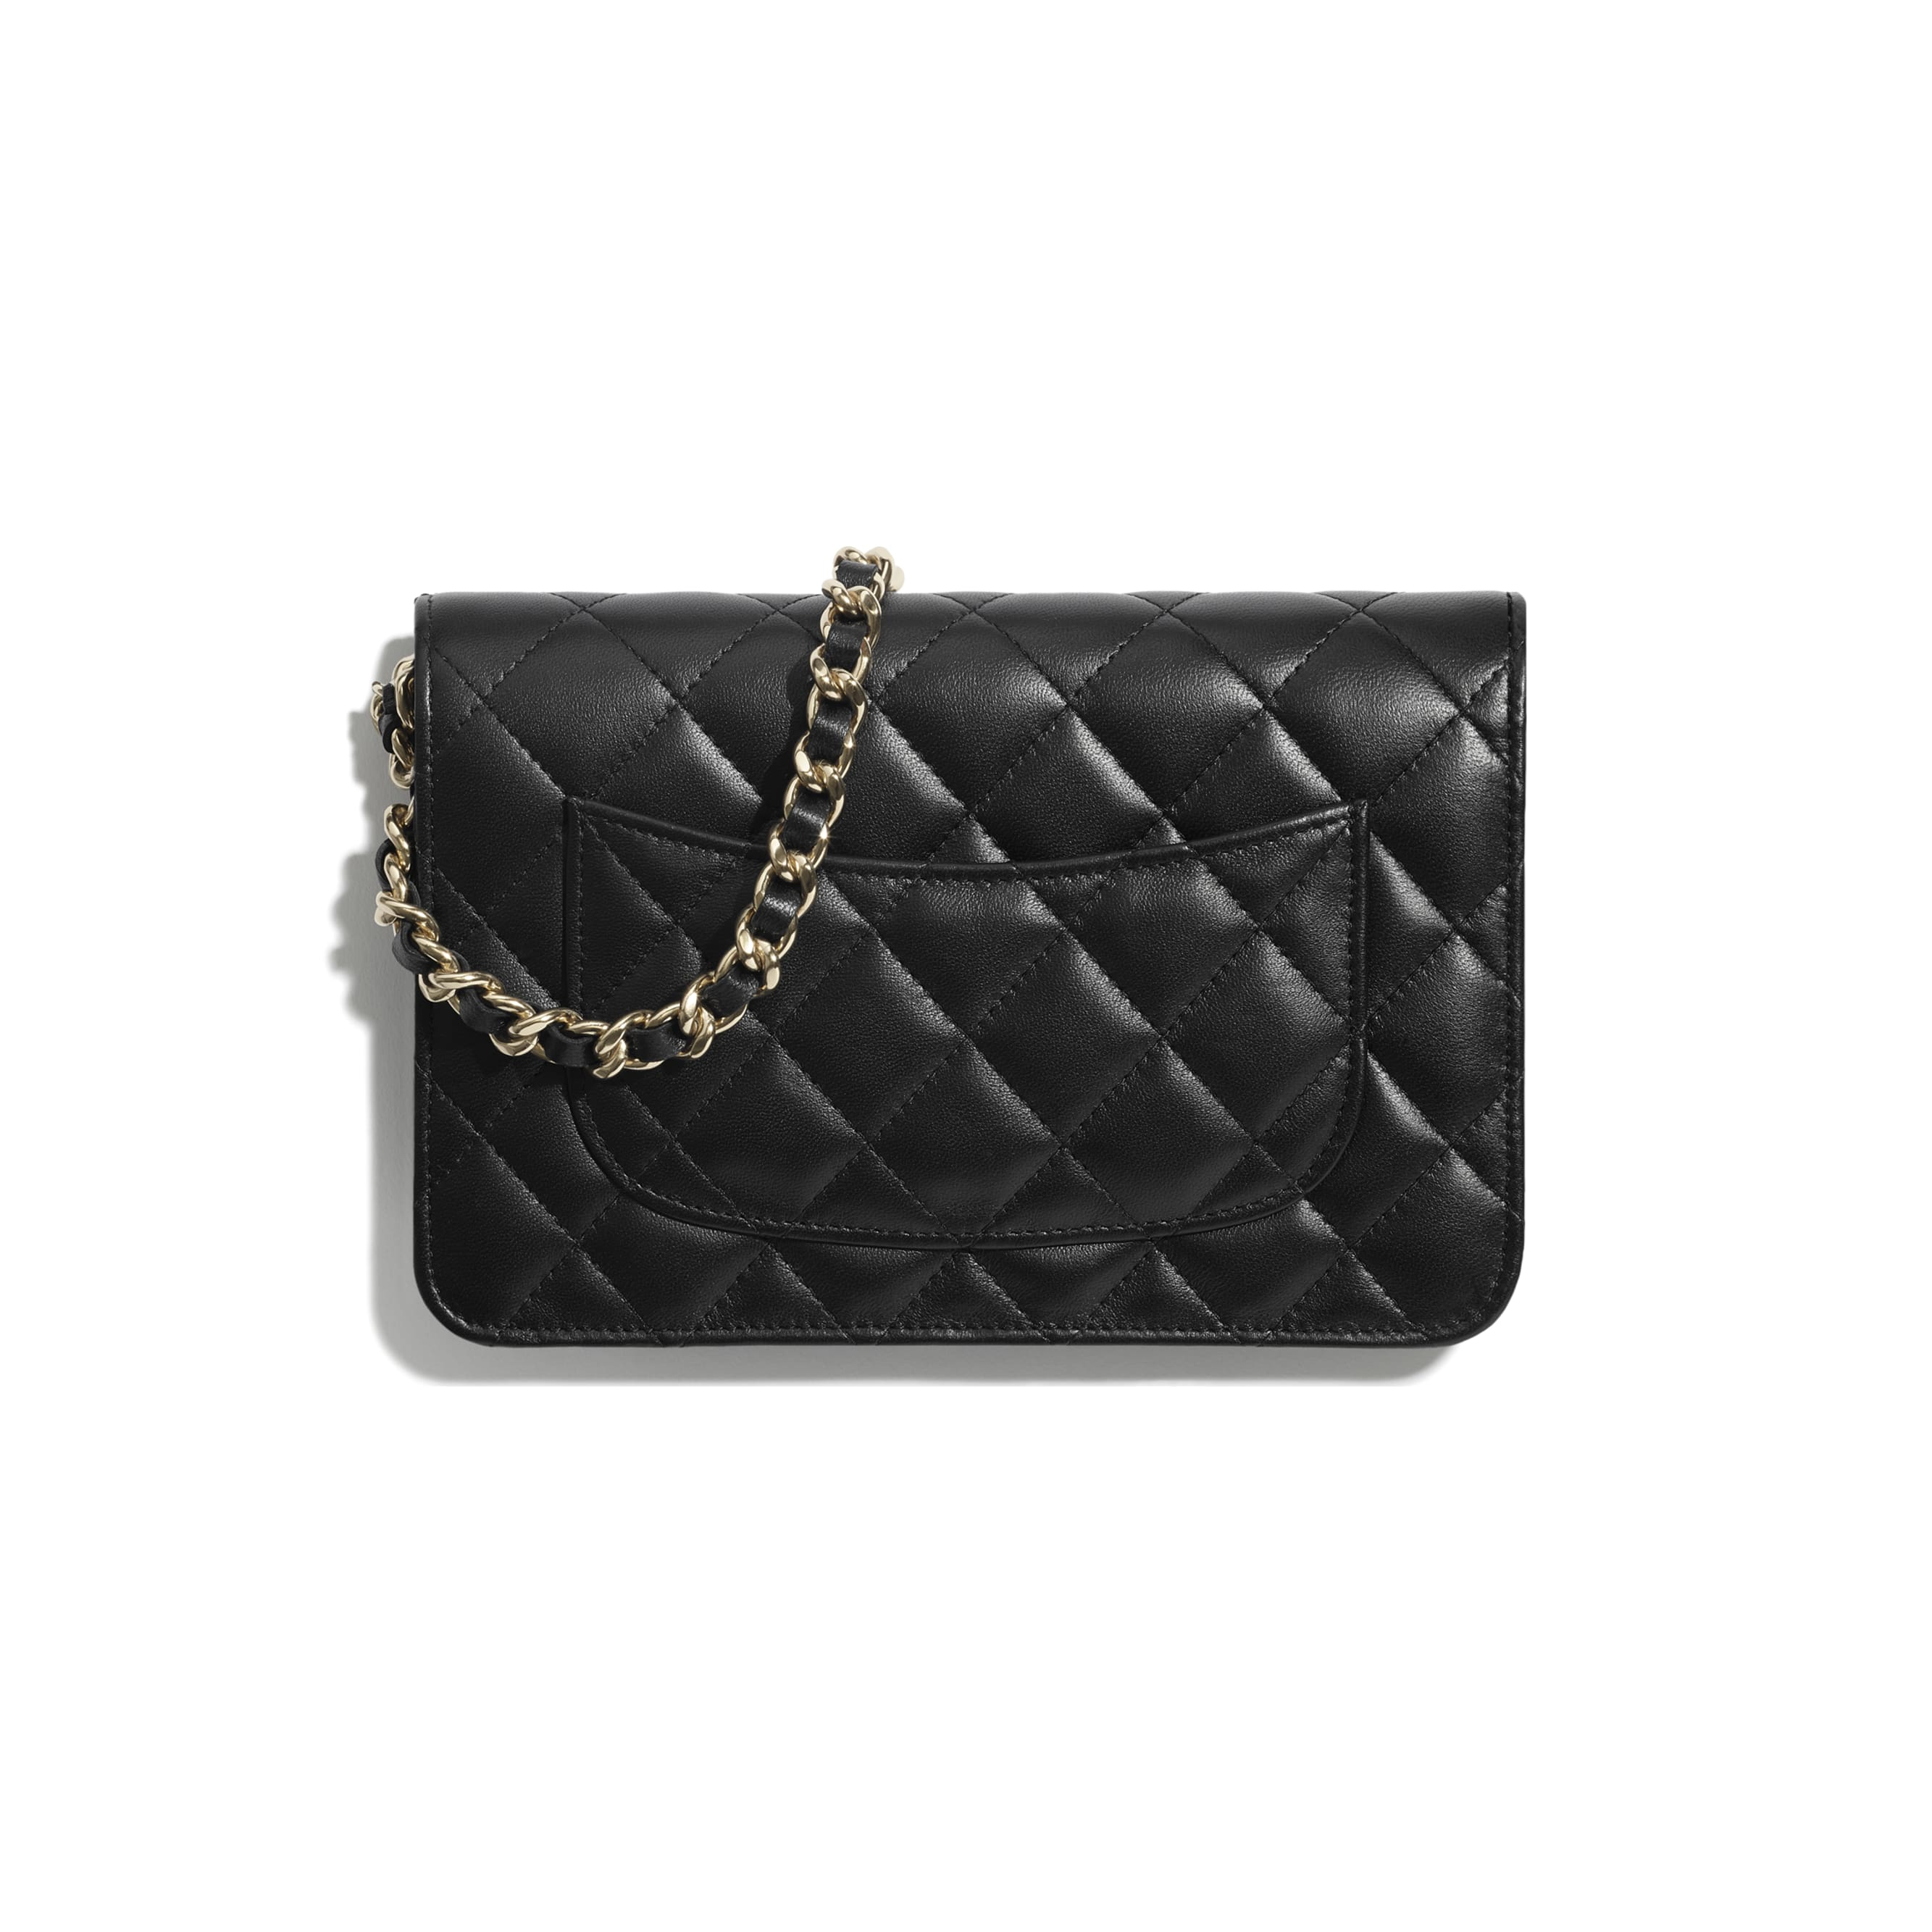 Wallet On Chain - Black - Lambskin, Charms & Gold-Tone Metal - CHANEL - Alternative view - see standard sized version